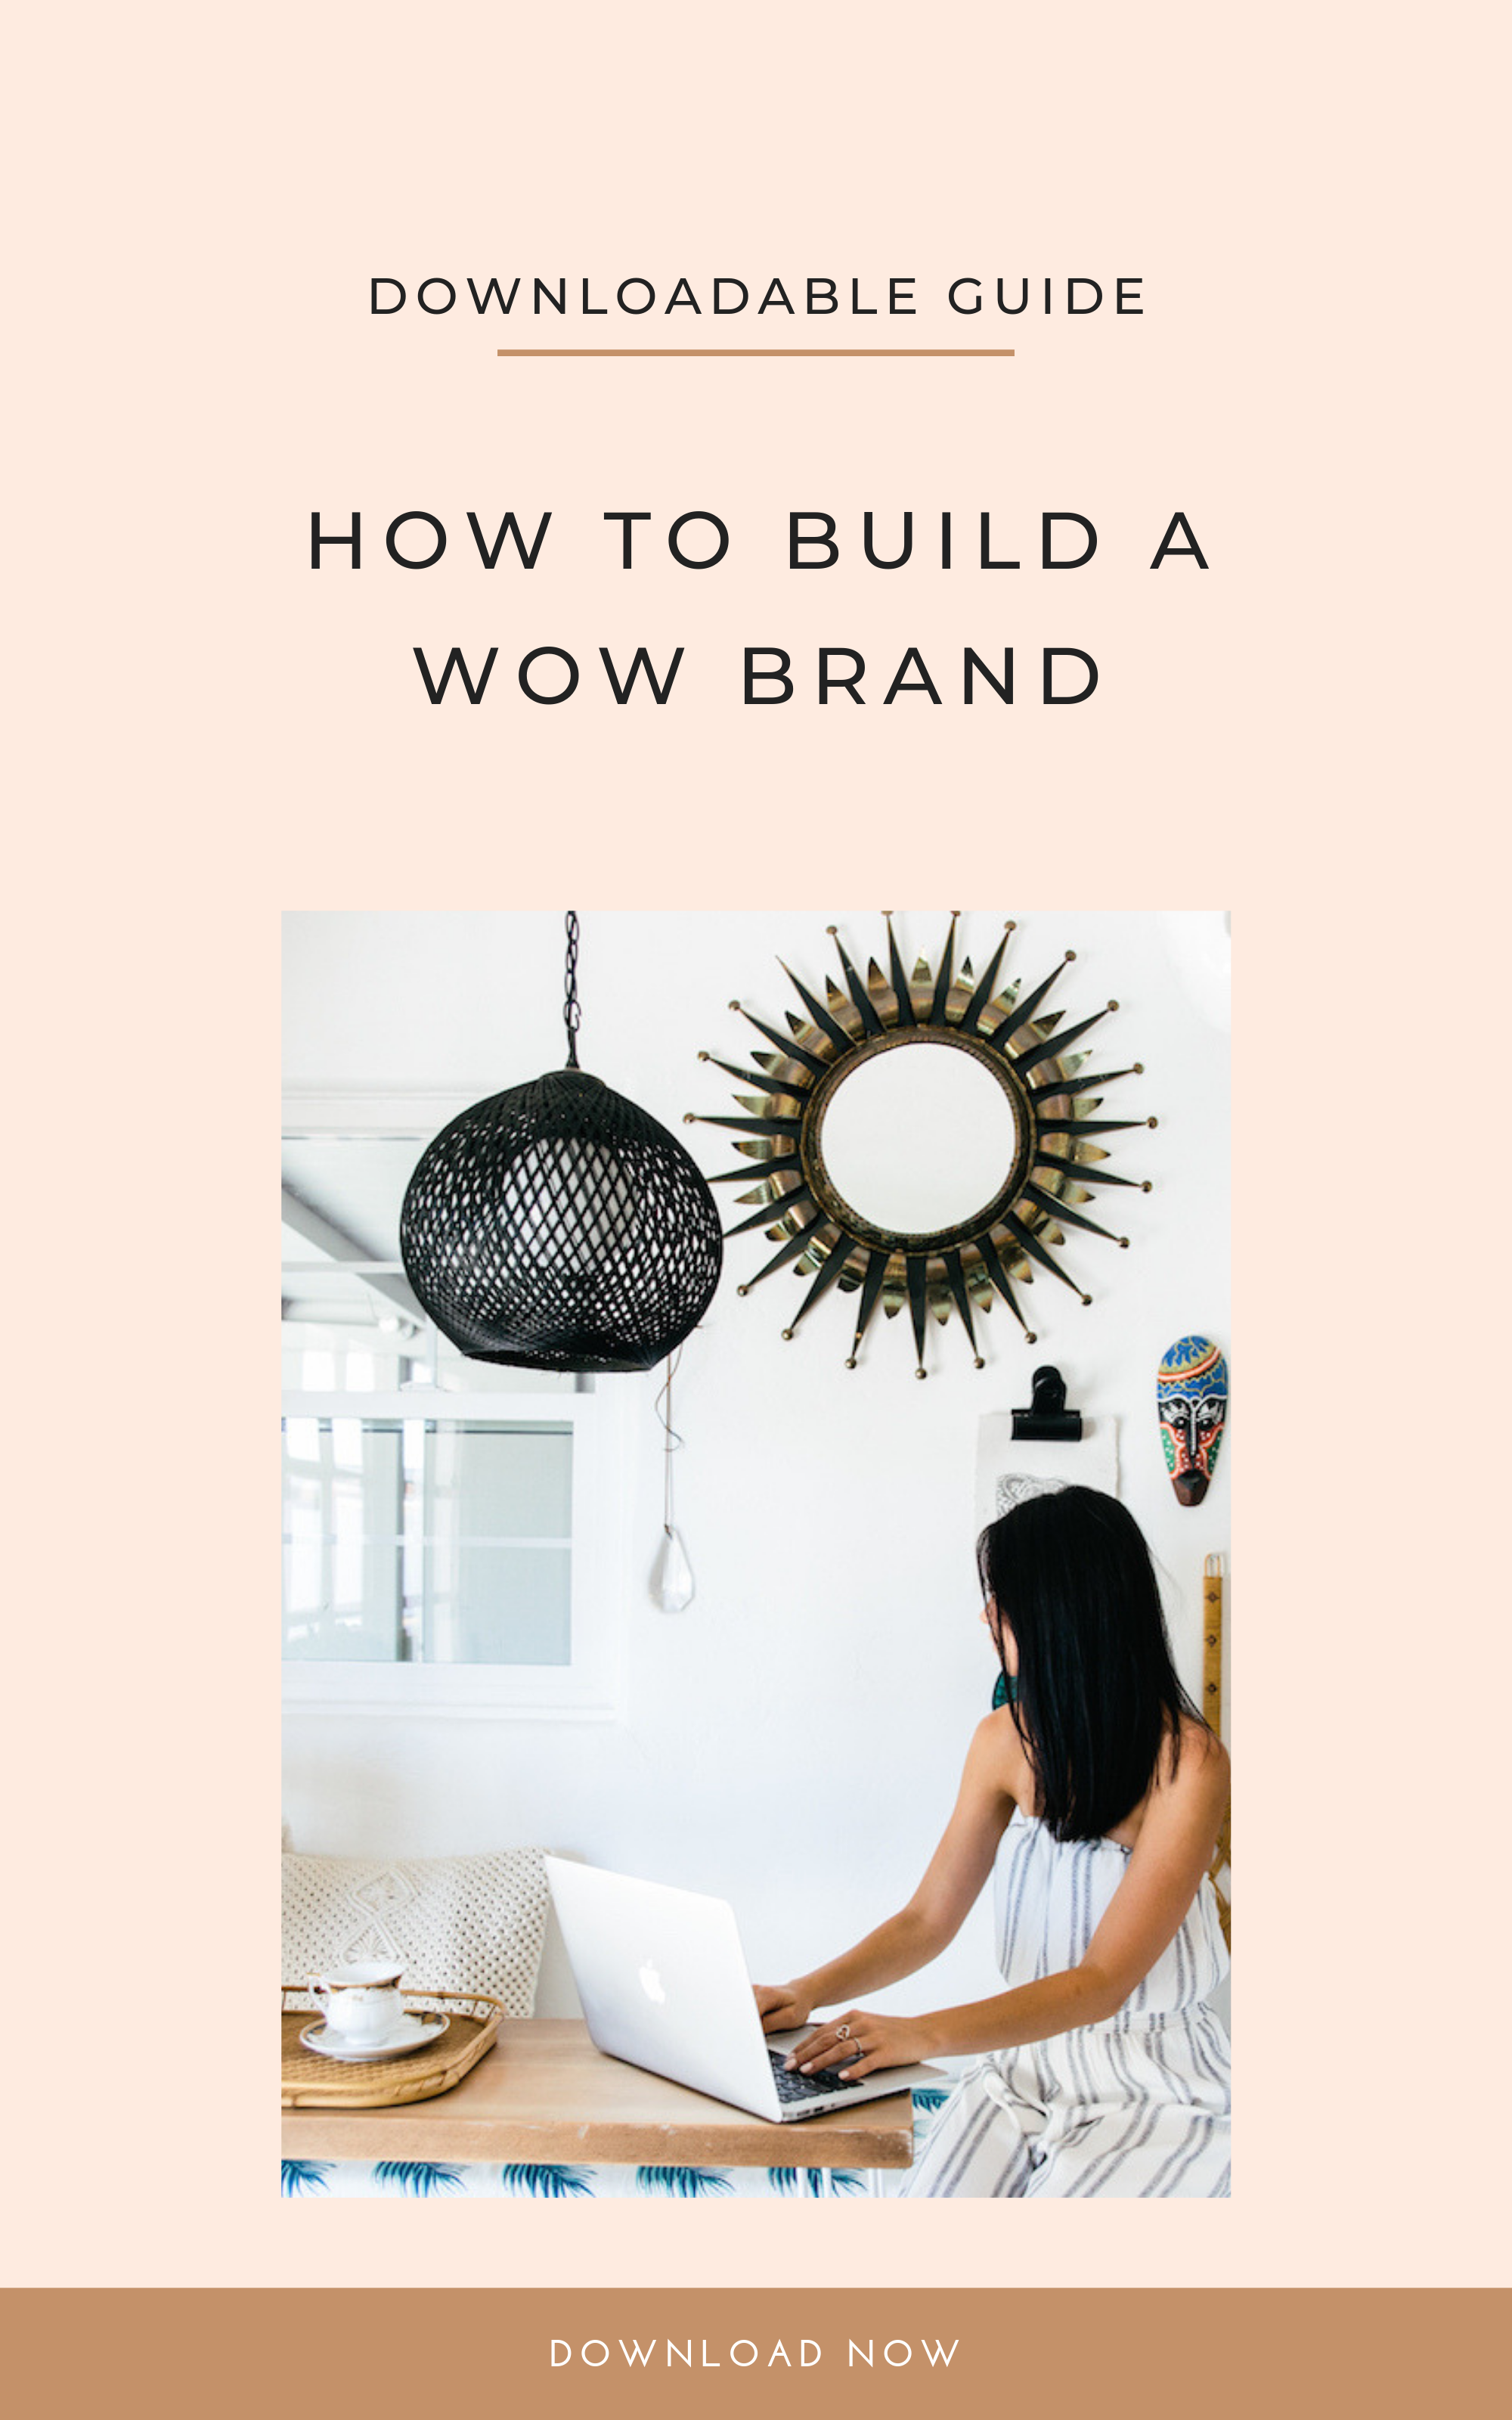 How to Build a Wow Brand